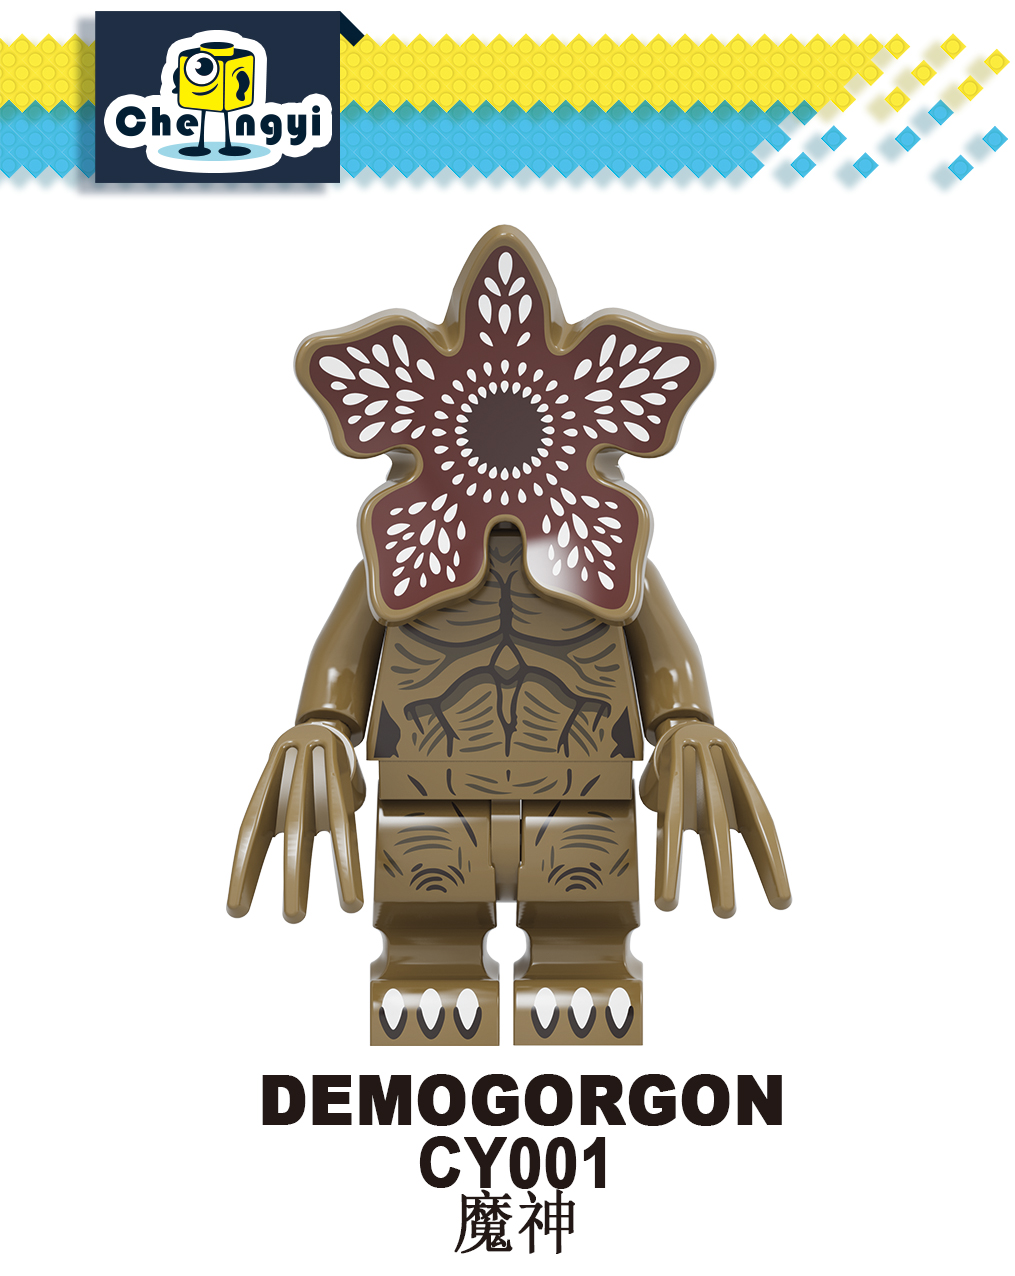 CY001 Demogorgon Juguetes Stranger Things Dustin Henderson Mike Wheeler Eleven Figures Building Blocks For Children Gift Toys